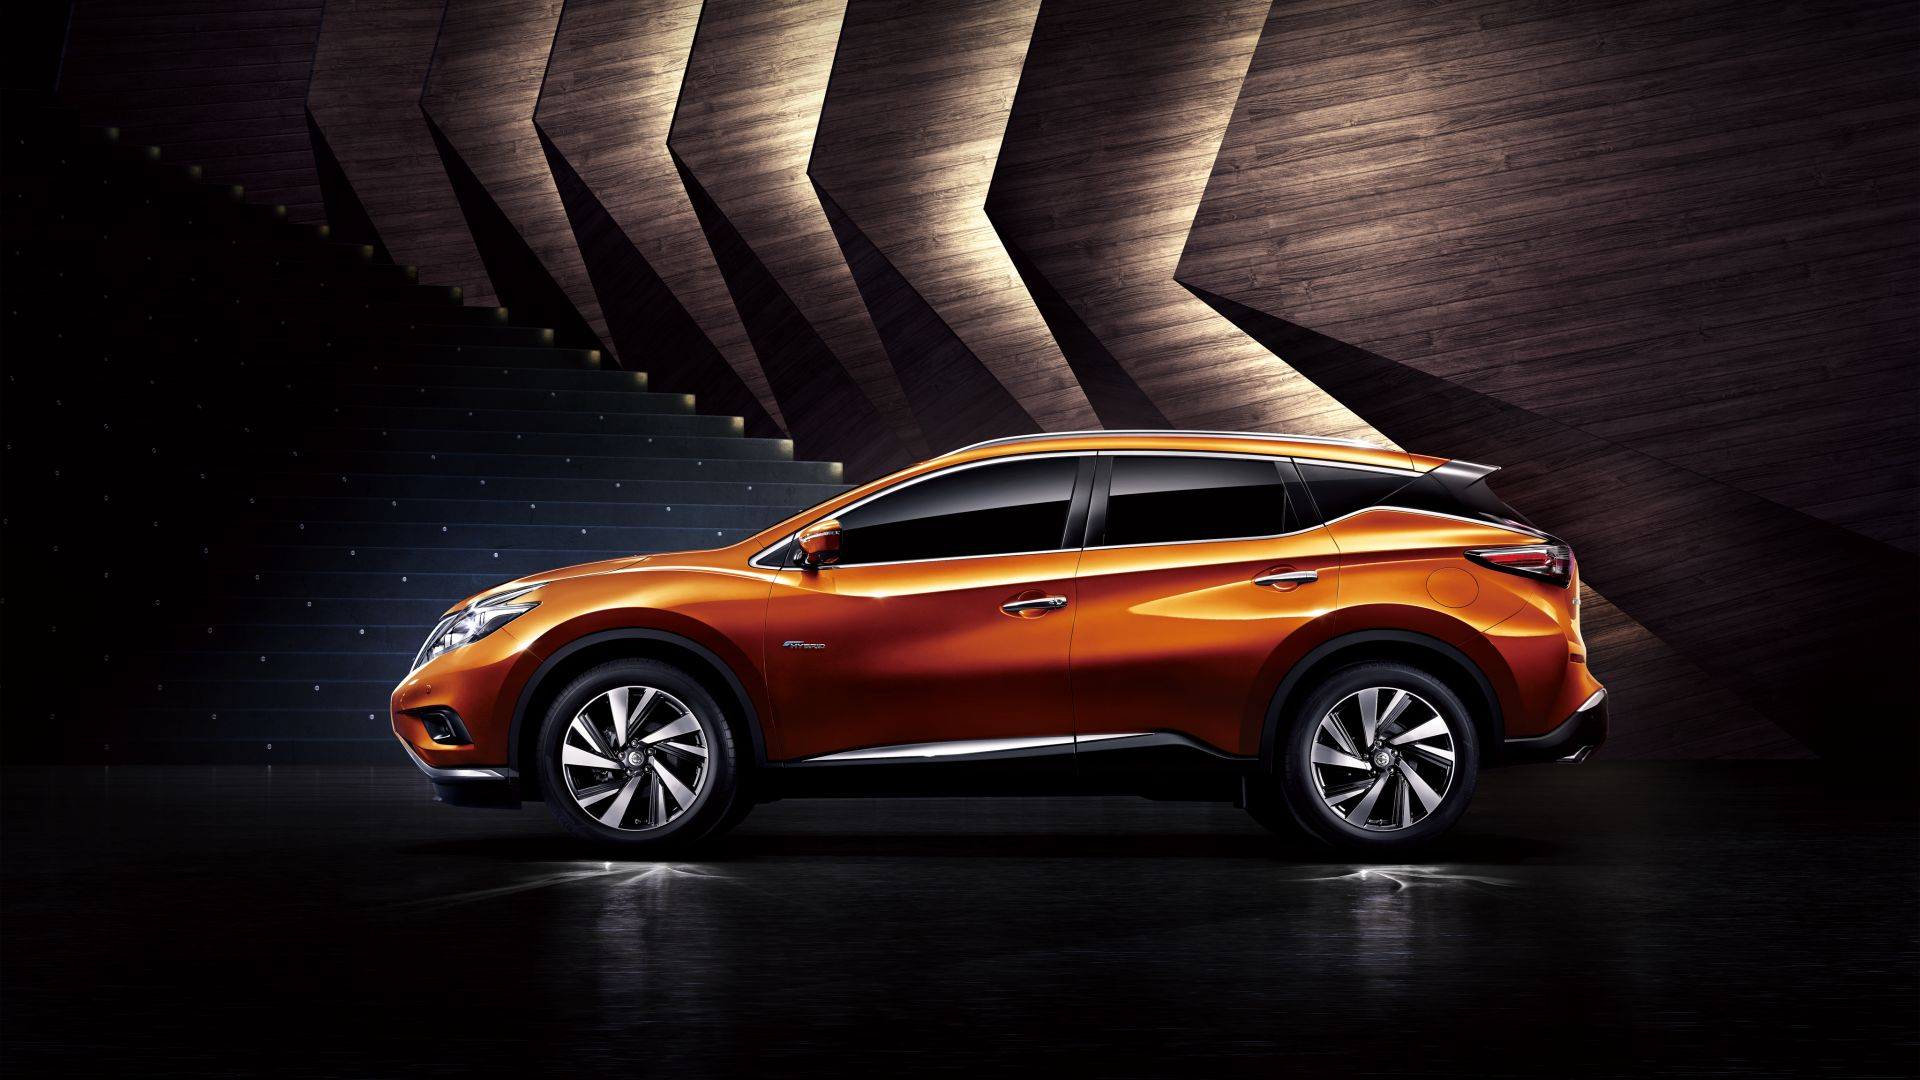 Nissan Murano, Hybrid, crossover, orange (horizontal)